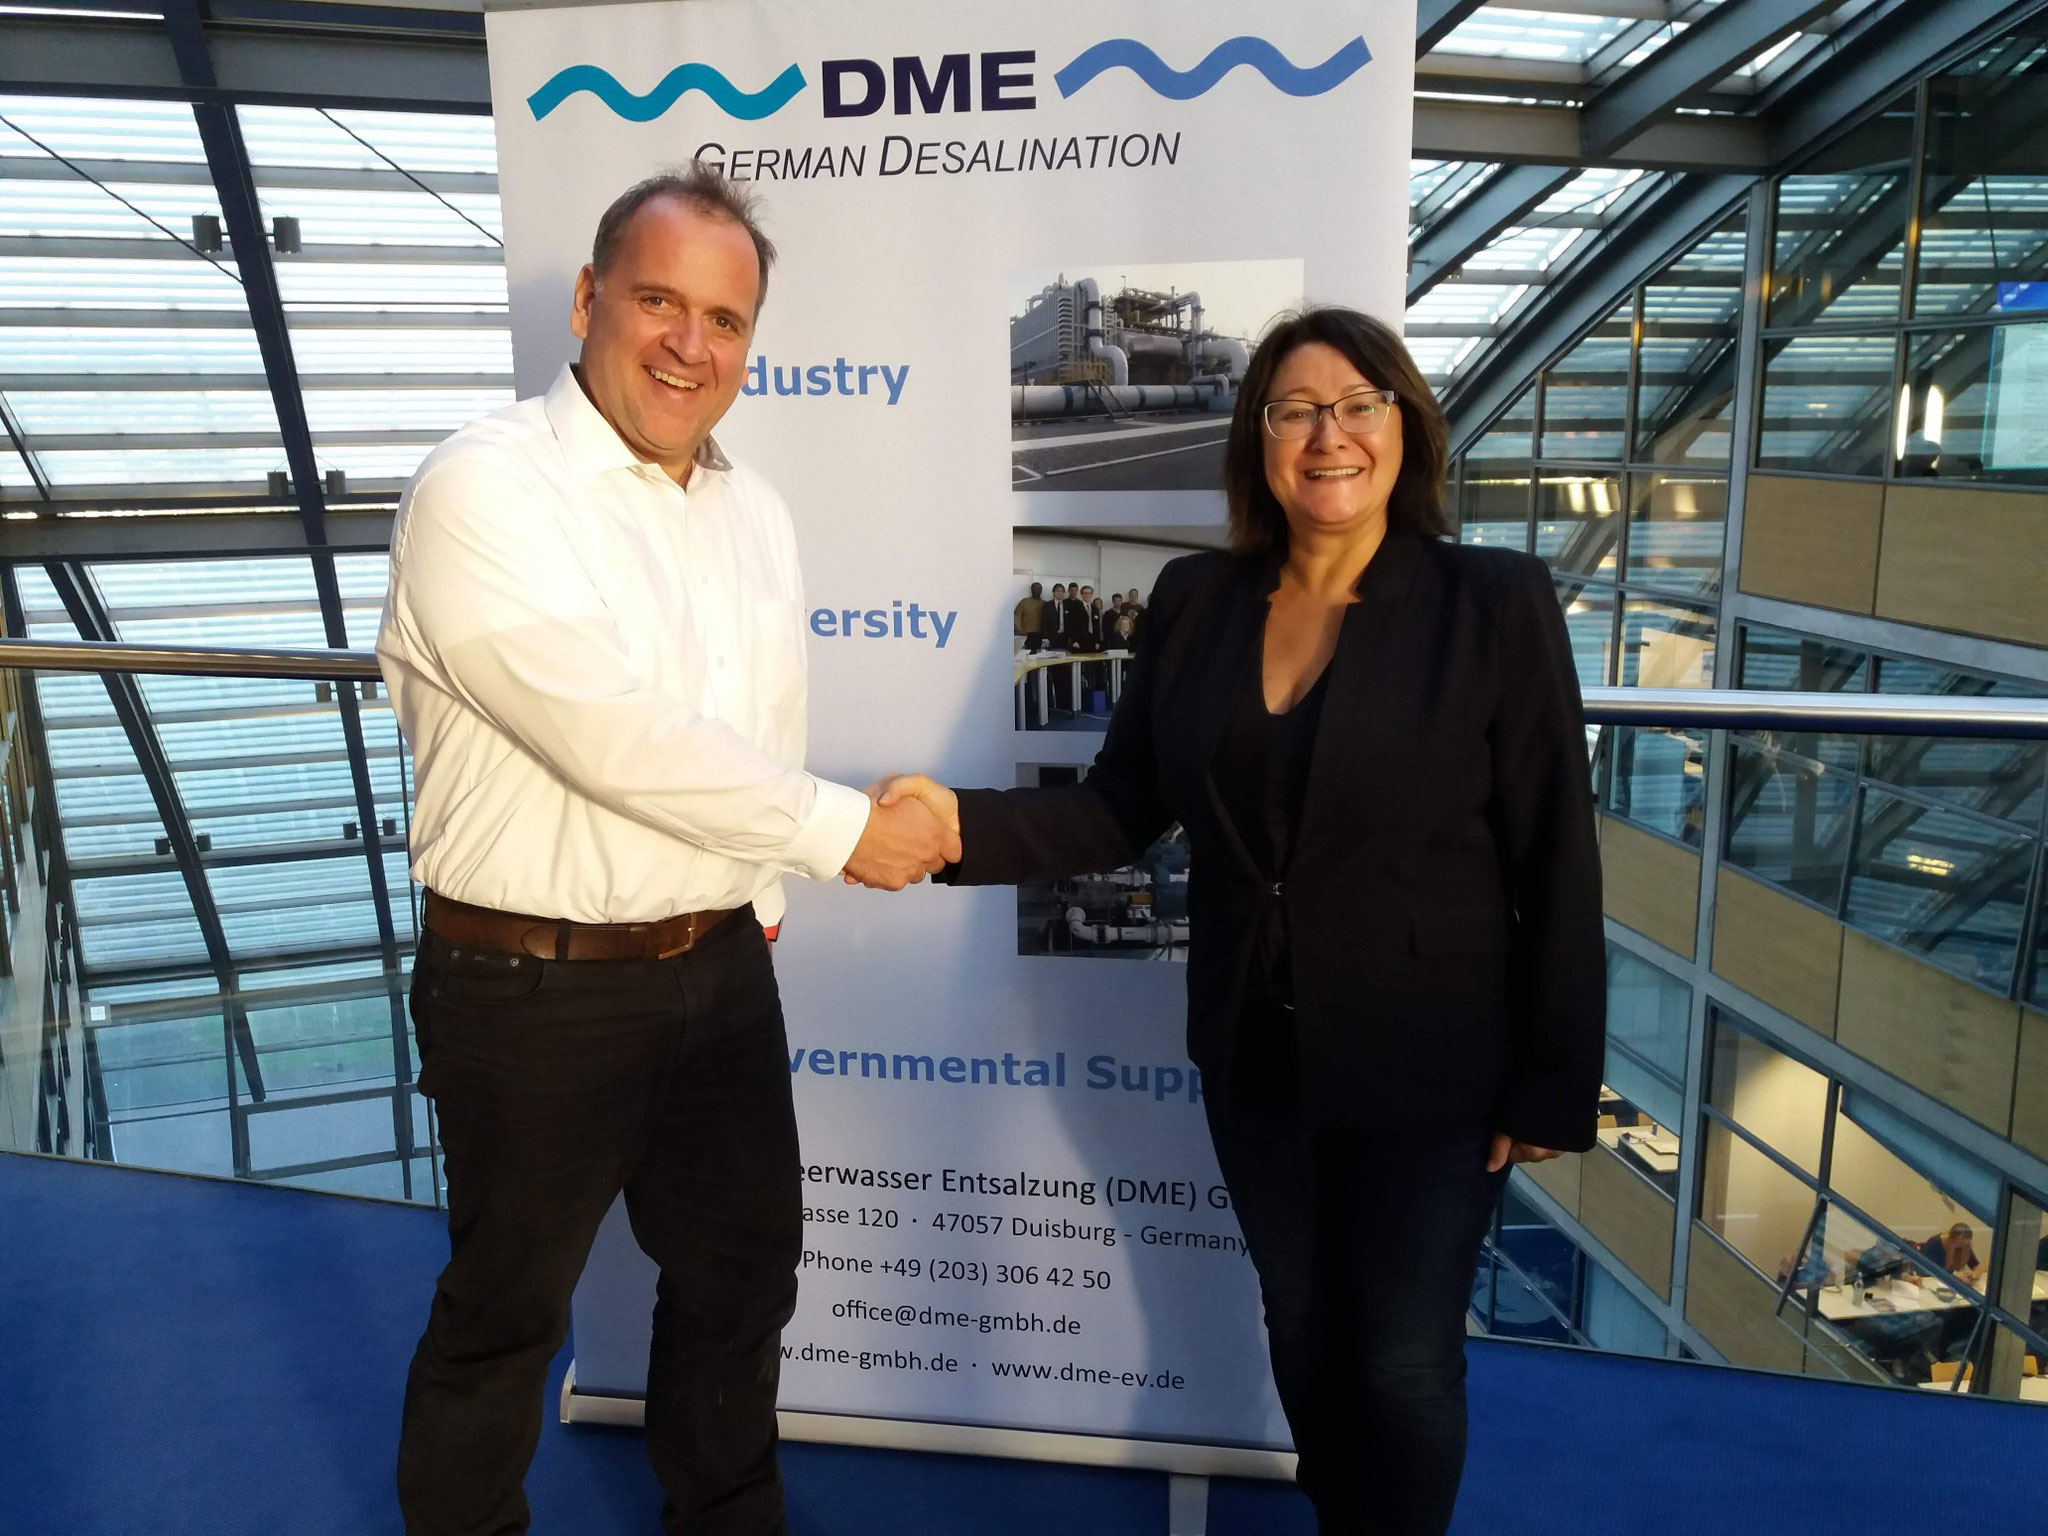 Simone Horvatin fro SUPPLYgoGREEN with the CEO, Mr. Claus Mertes, from the German Water Desalination